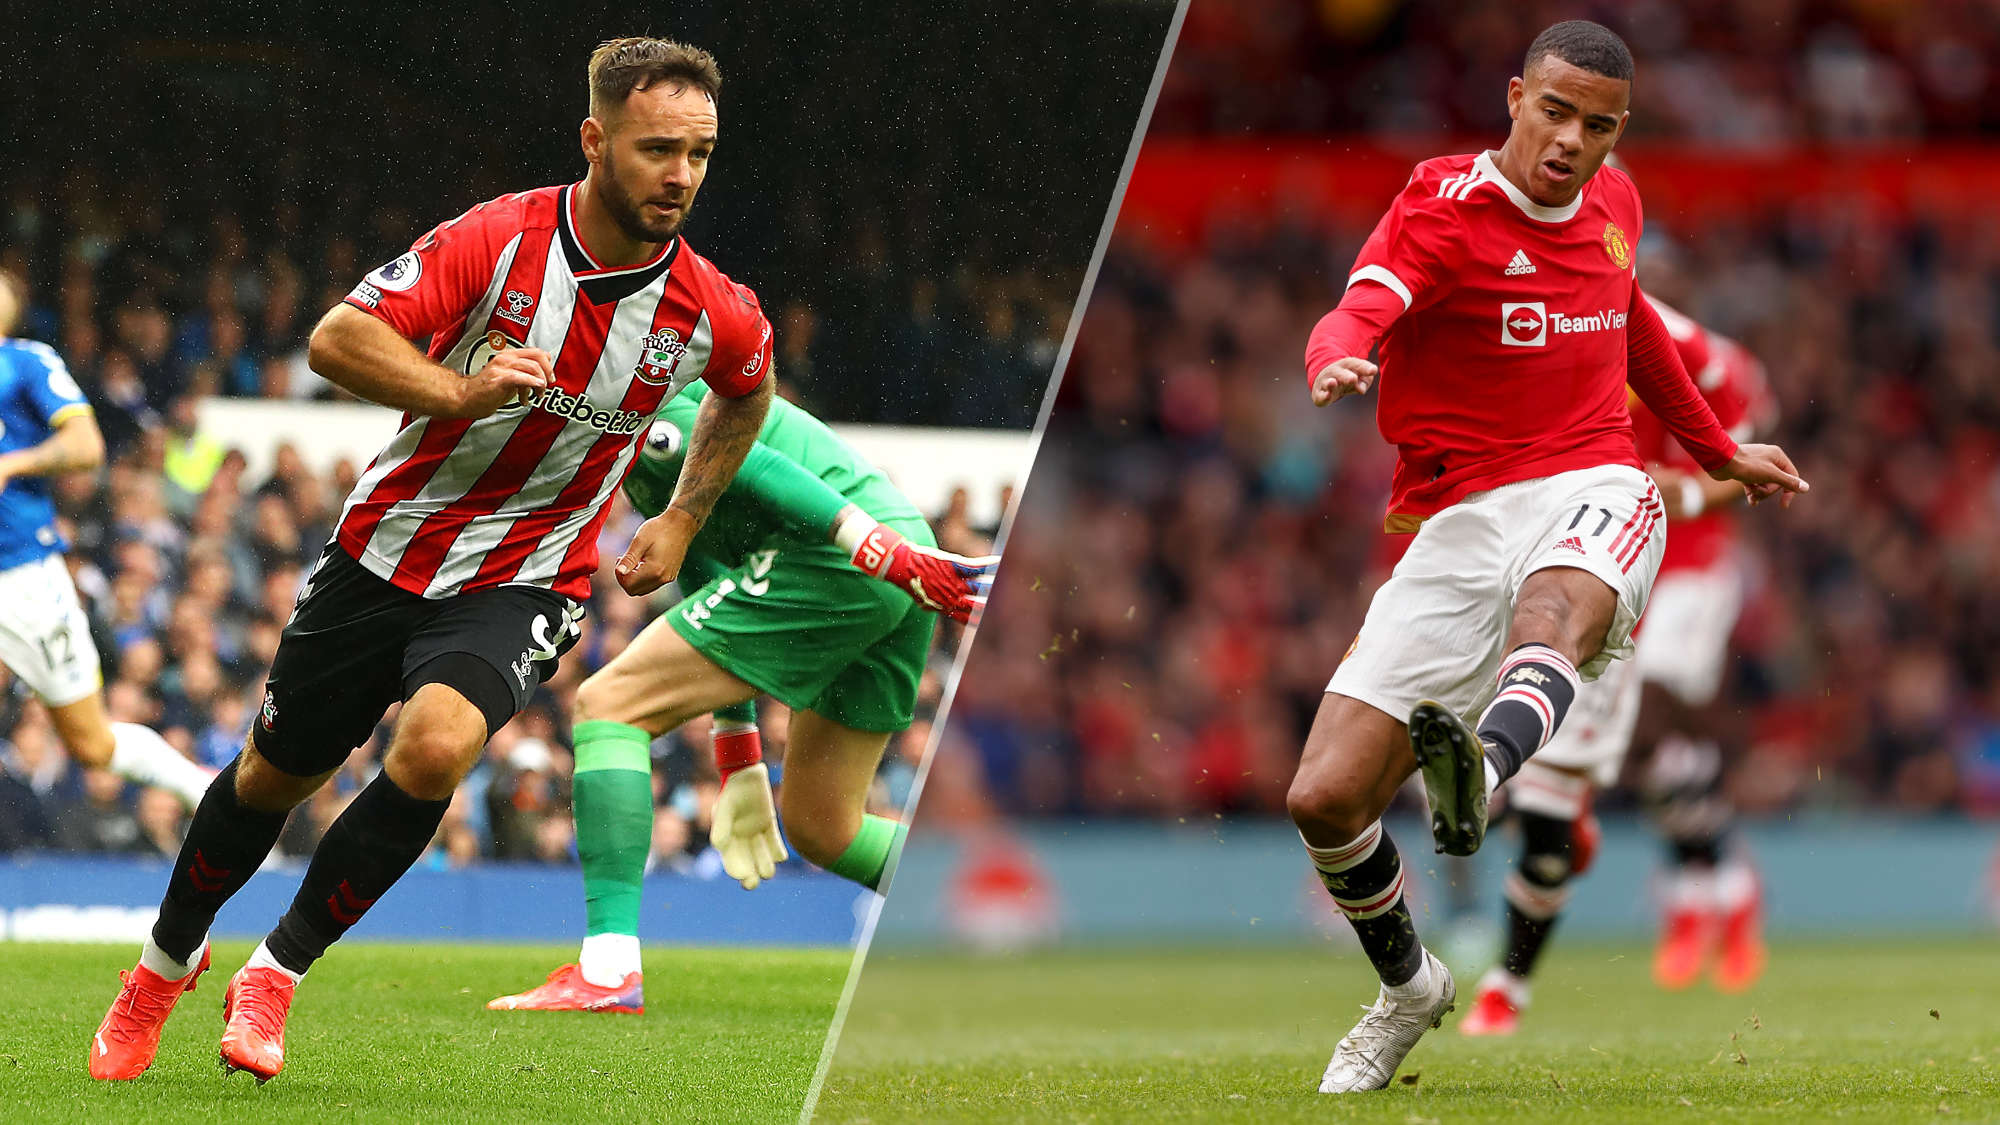 Southampton vs Manchester United live stream — how to watch Premier League  21/22 game online | Tom's Guide